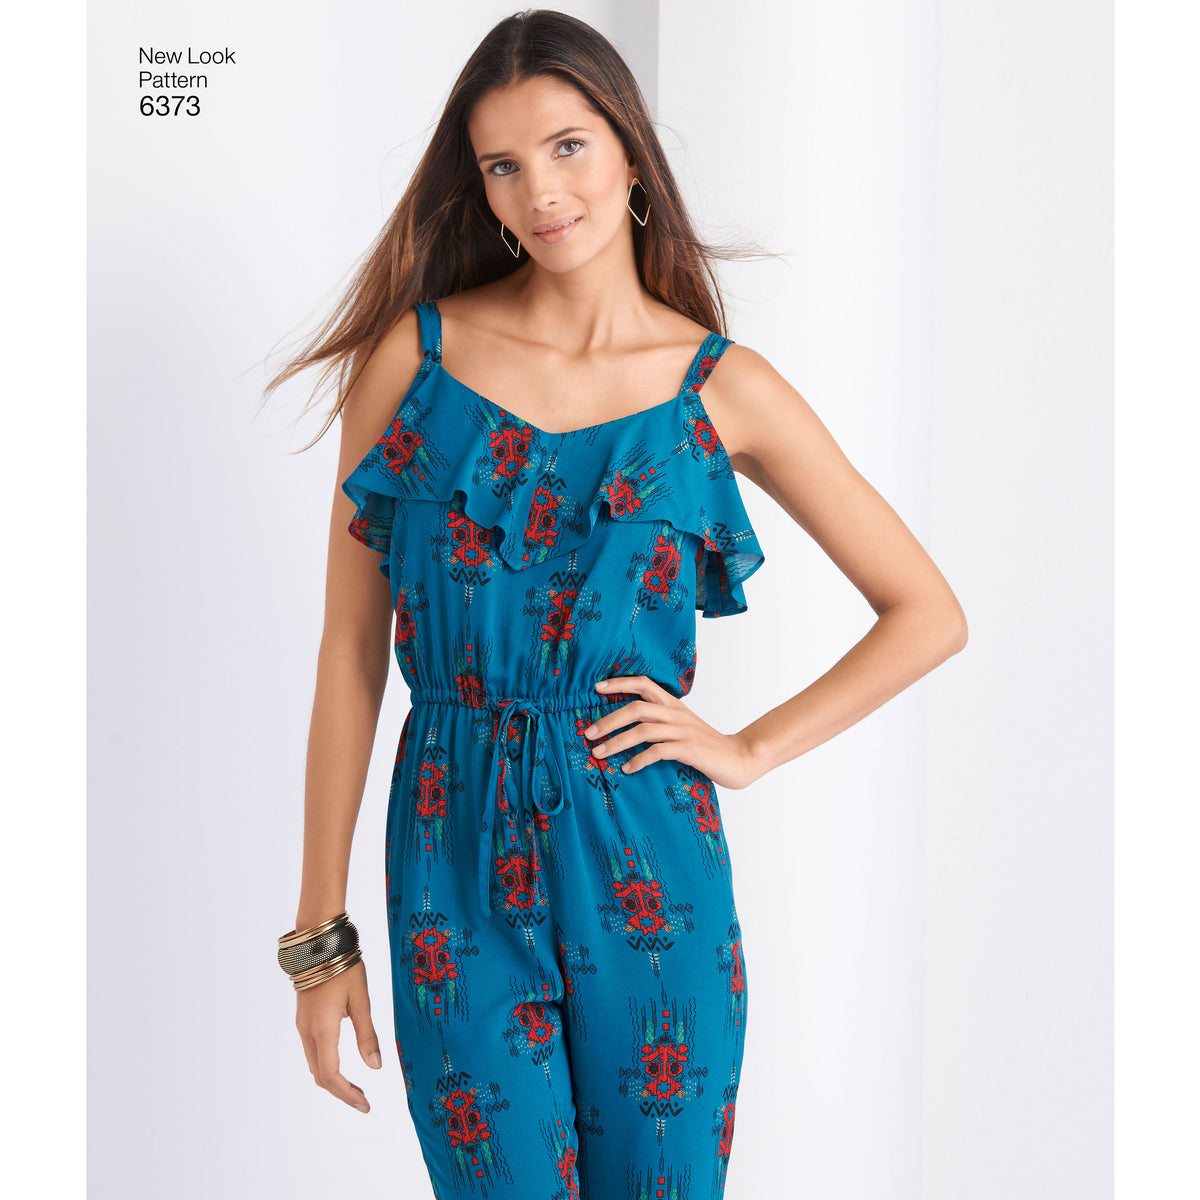 6373 Misses' Jumpsuit or Romper and Dresses